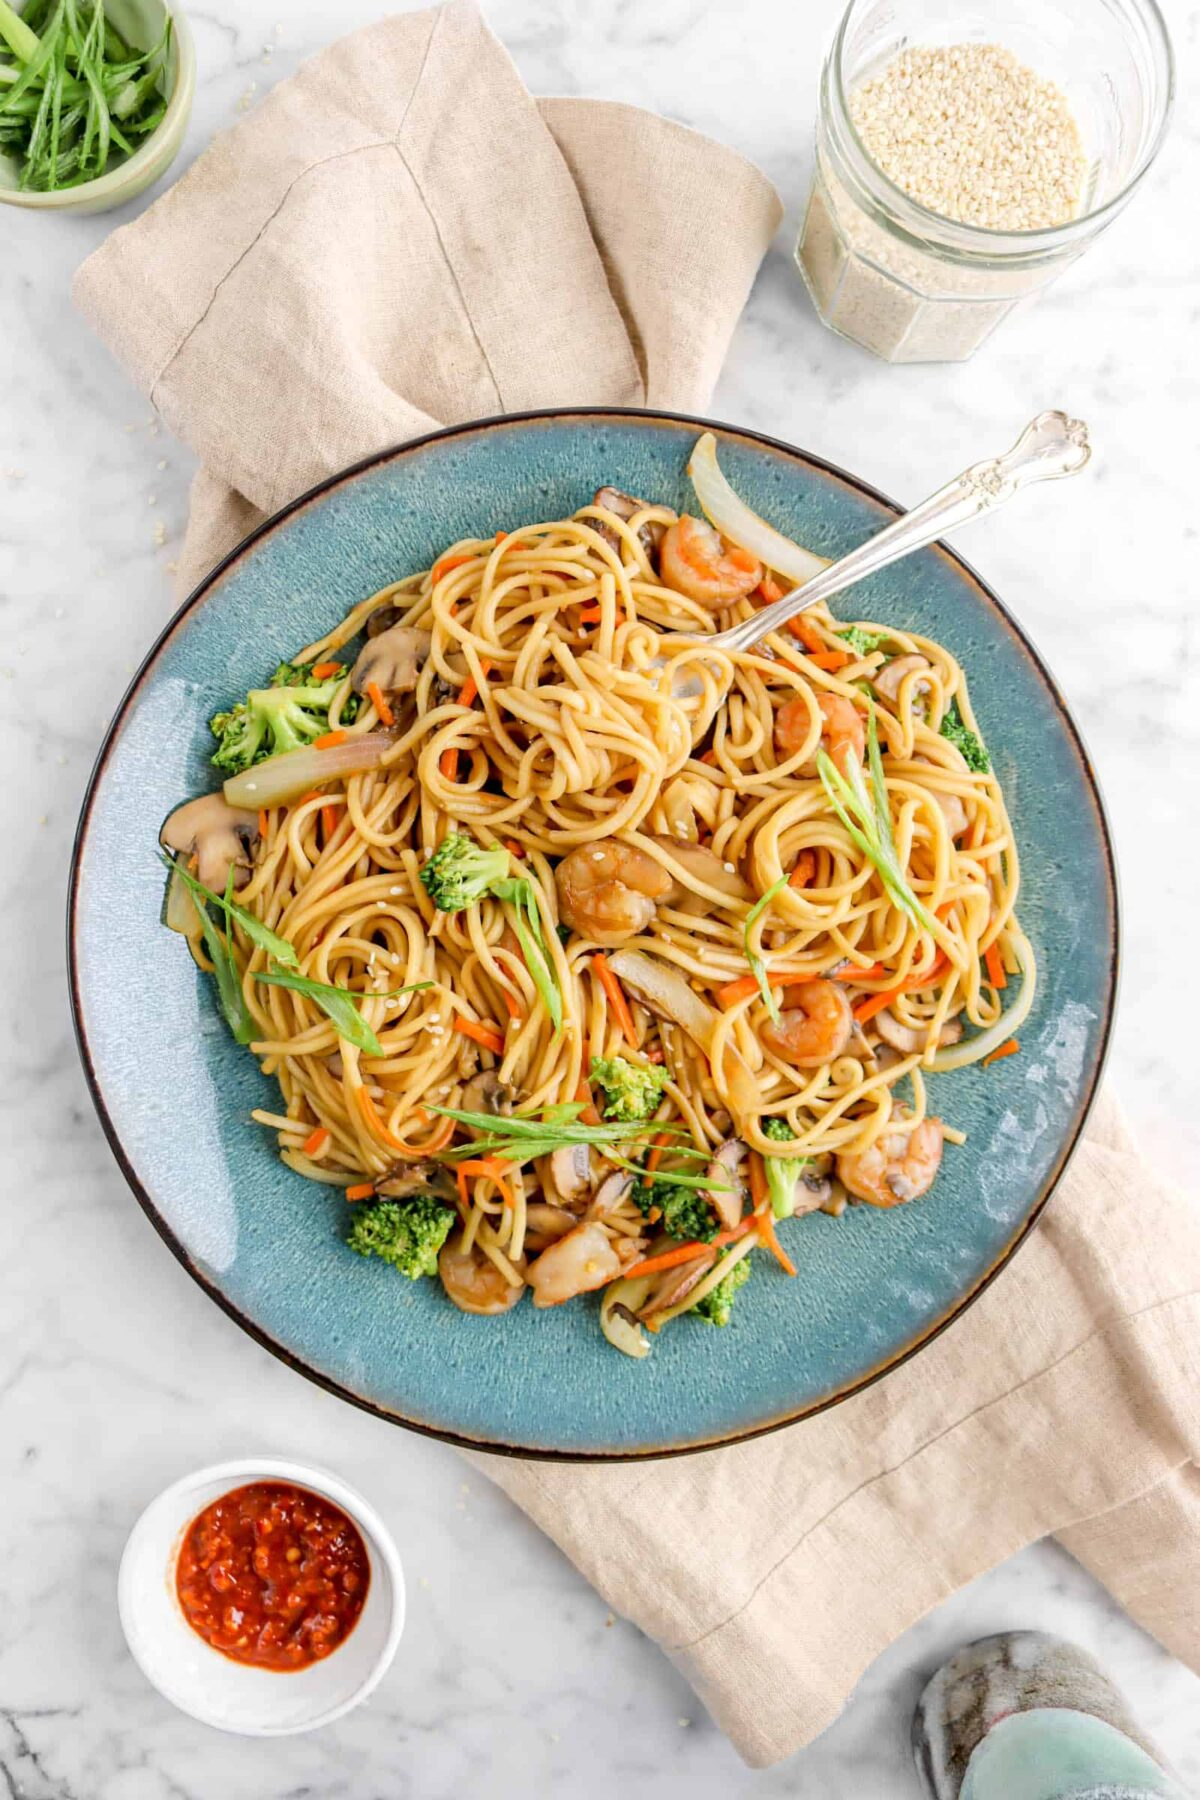 lo mein in blue plate on tan napkin with jar of sesame seeds, chili paste, and green onions